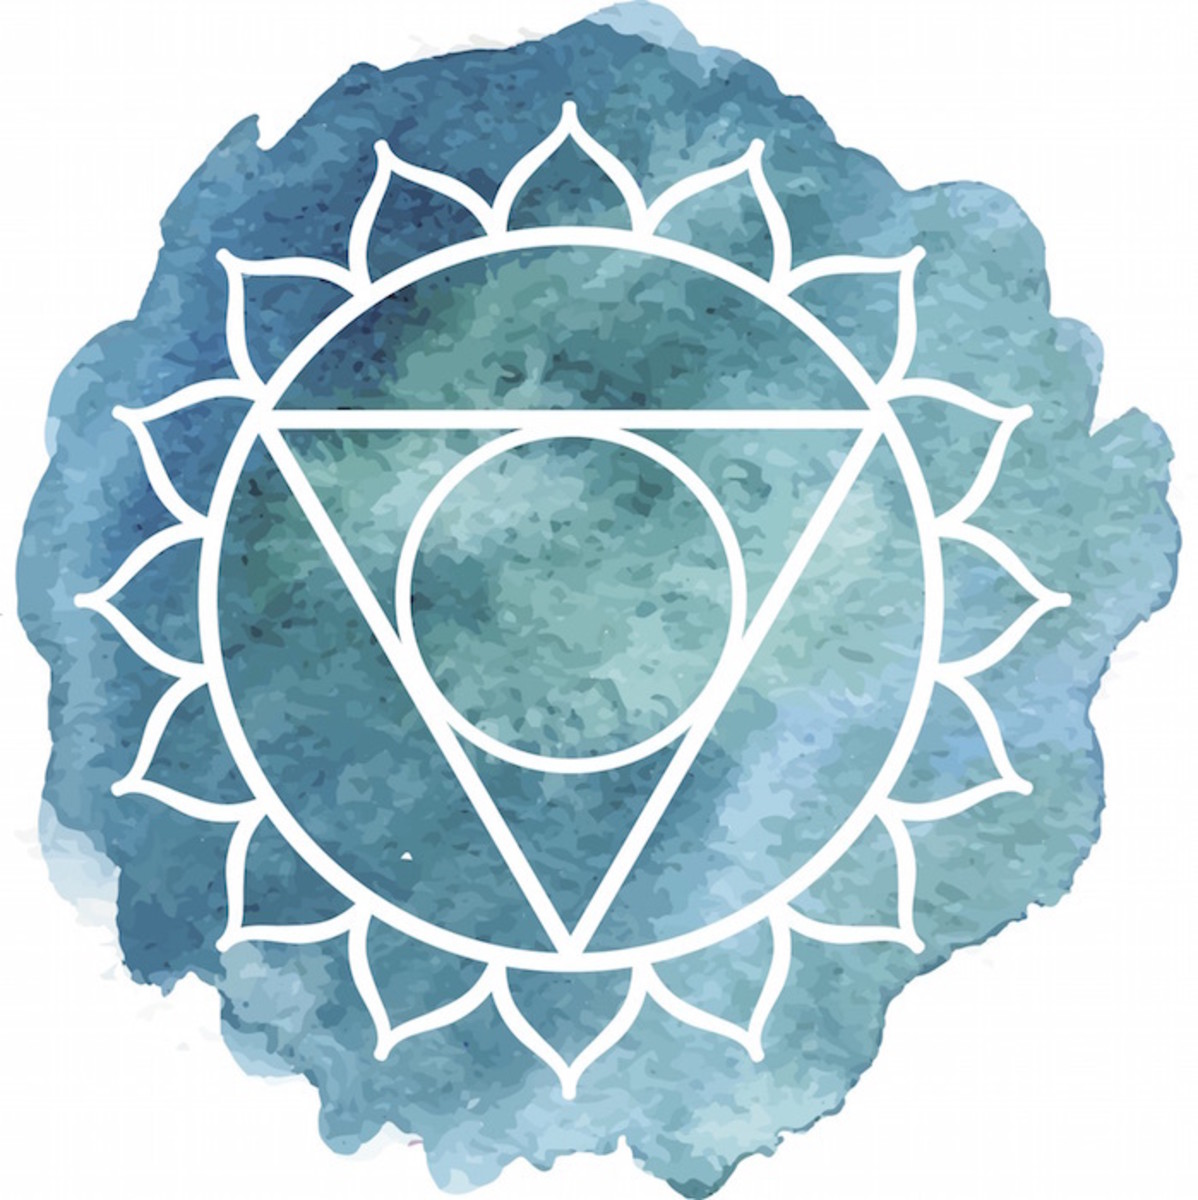 Anhydrite is most beneficial when used on the throat chakra during meditation or crystal healing.